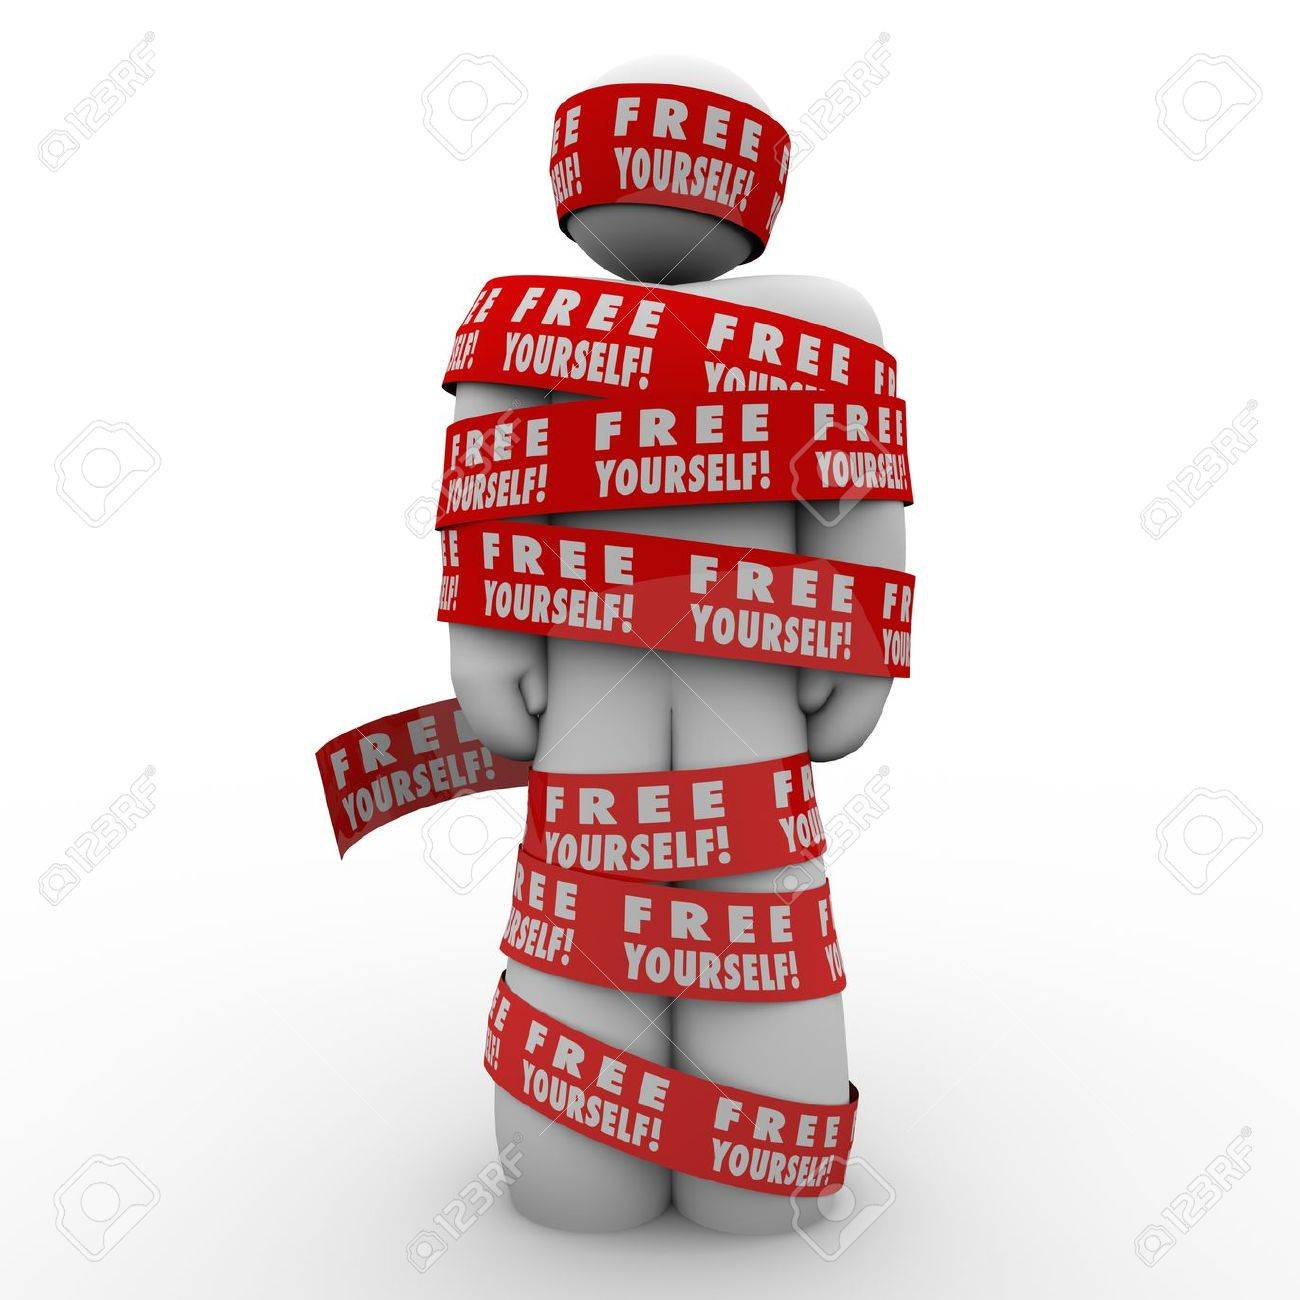 A person or man is oppressed and wrapped up in red tape reading Free Yourself to illustrate the need to fight back and be liberated from the chains that bind you Stock Photo - 20163333